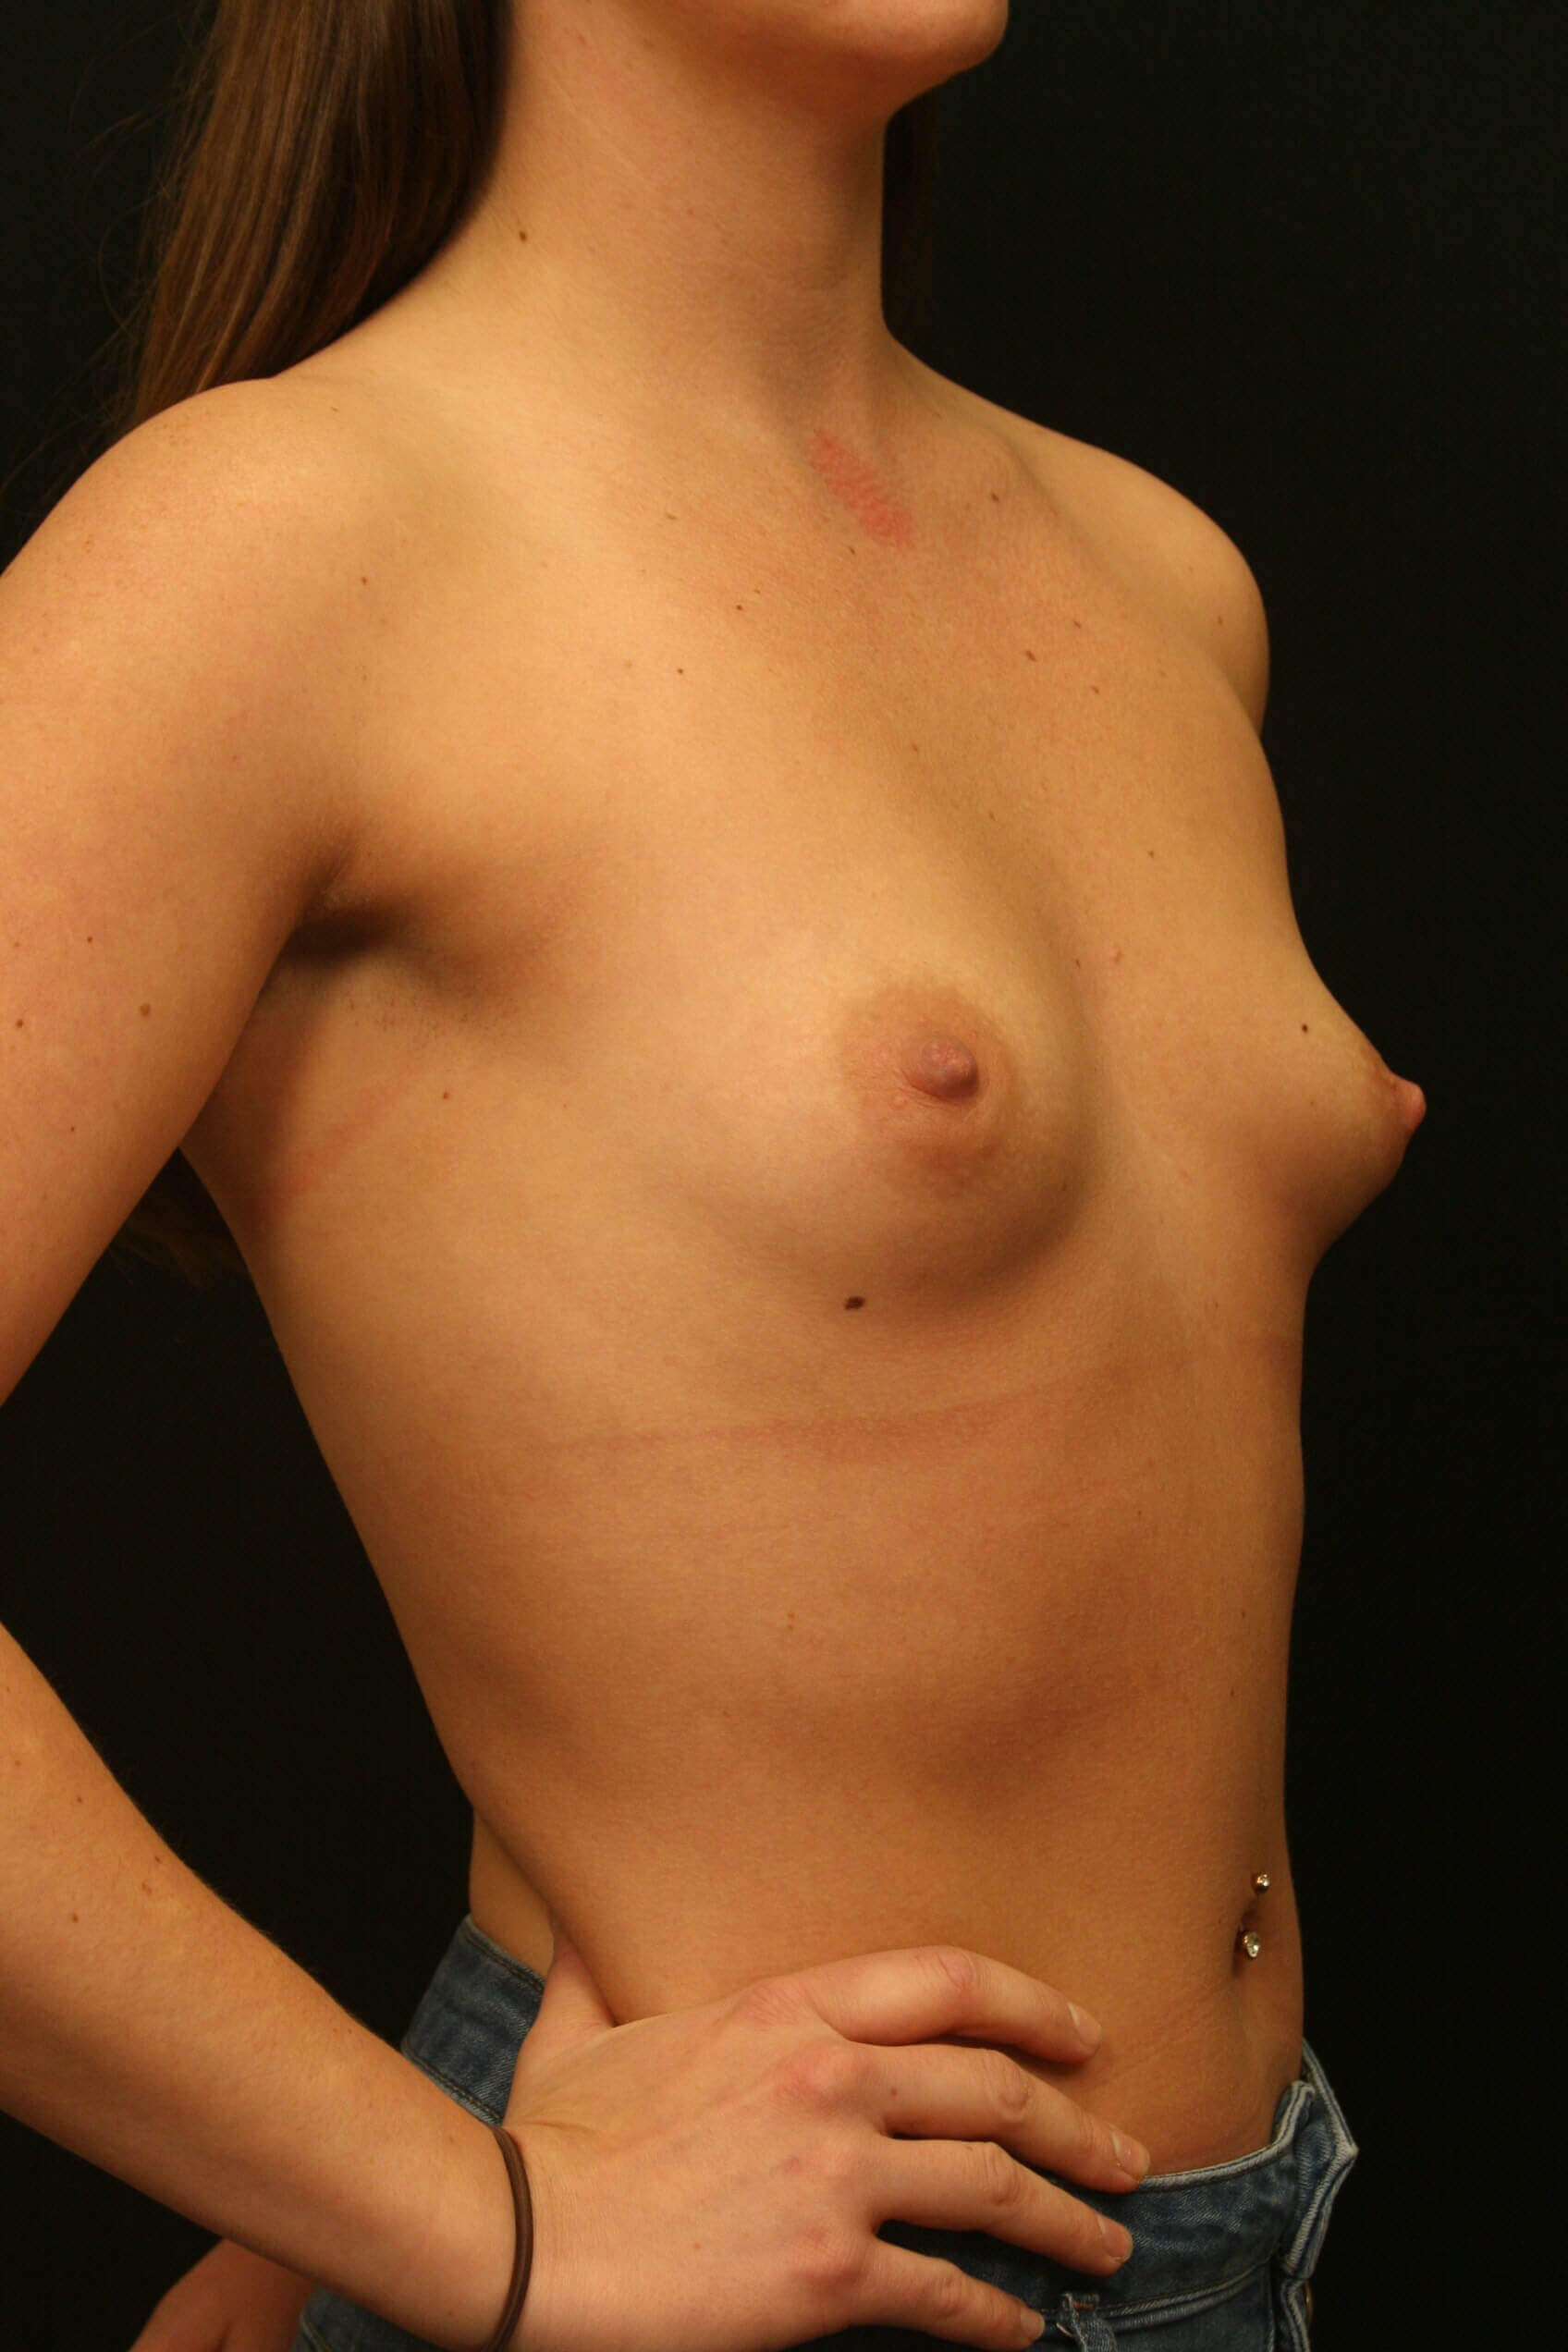 Breast Augmentation Results Before